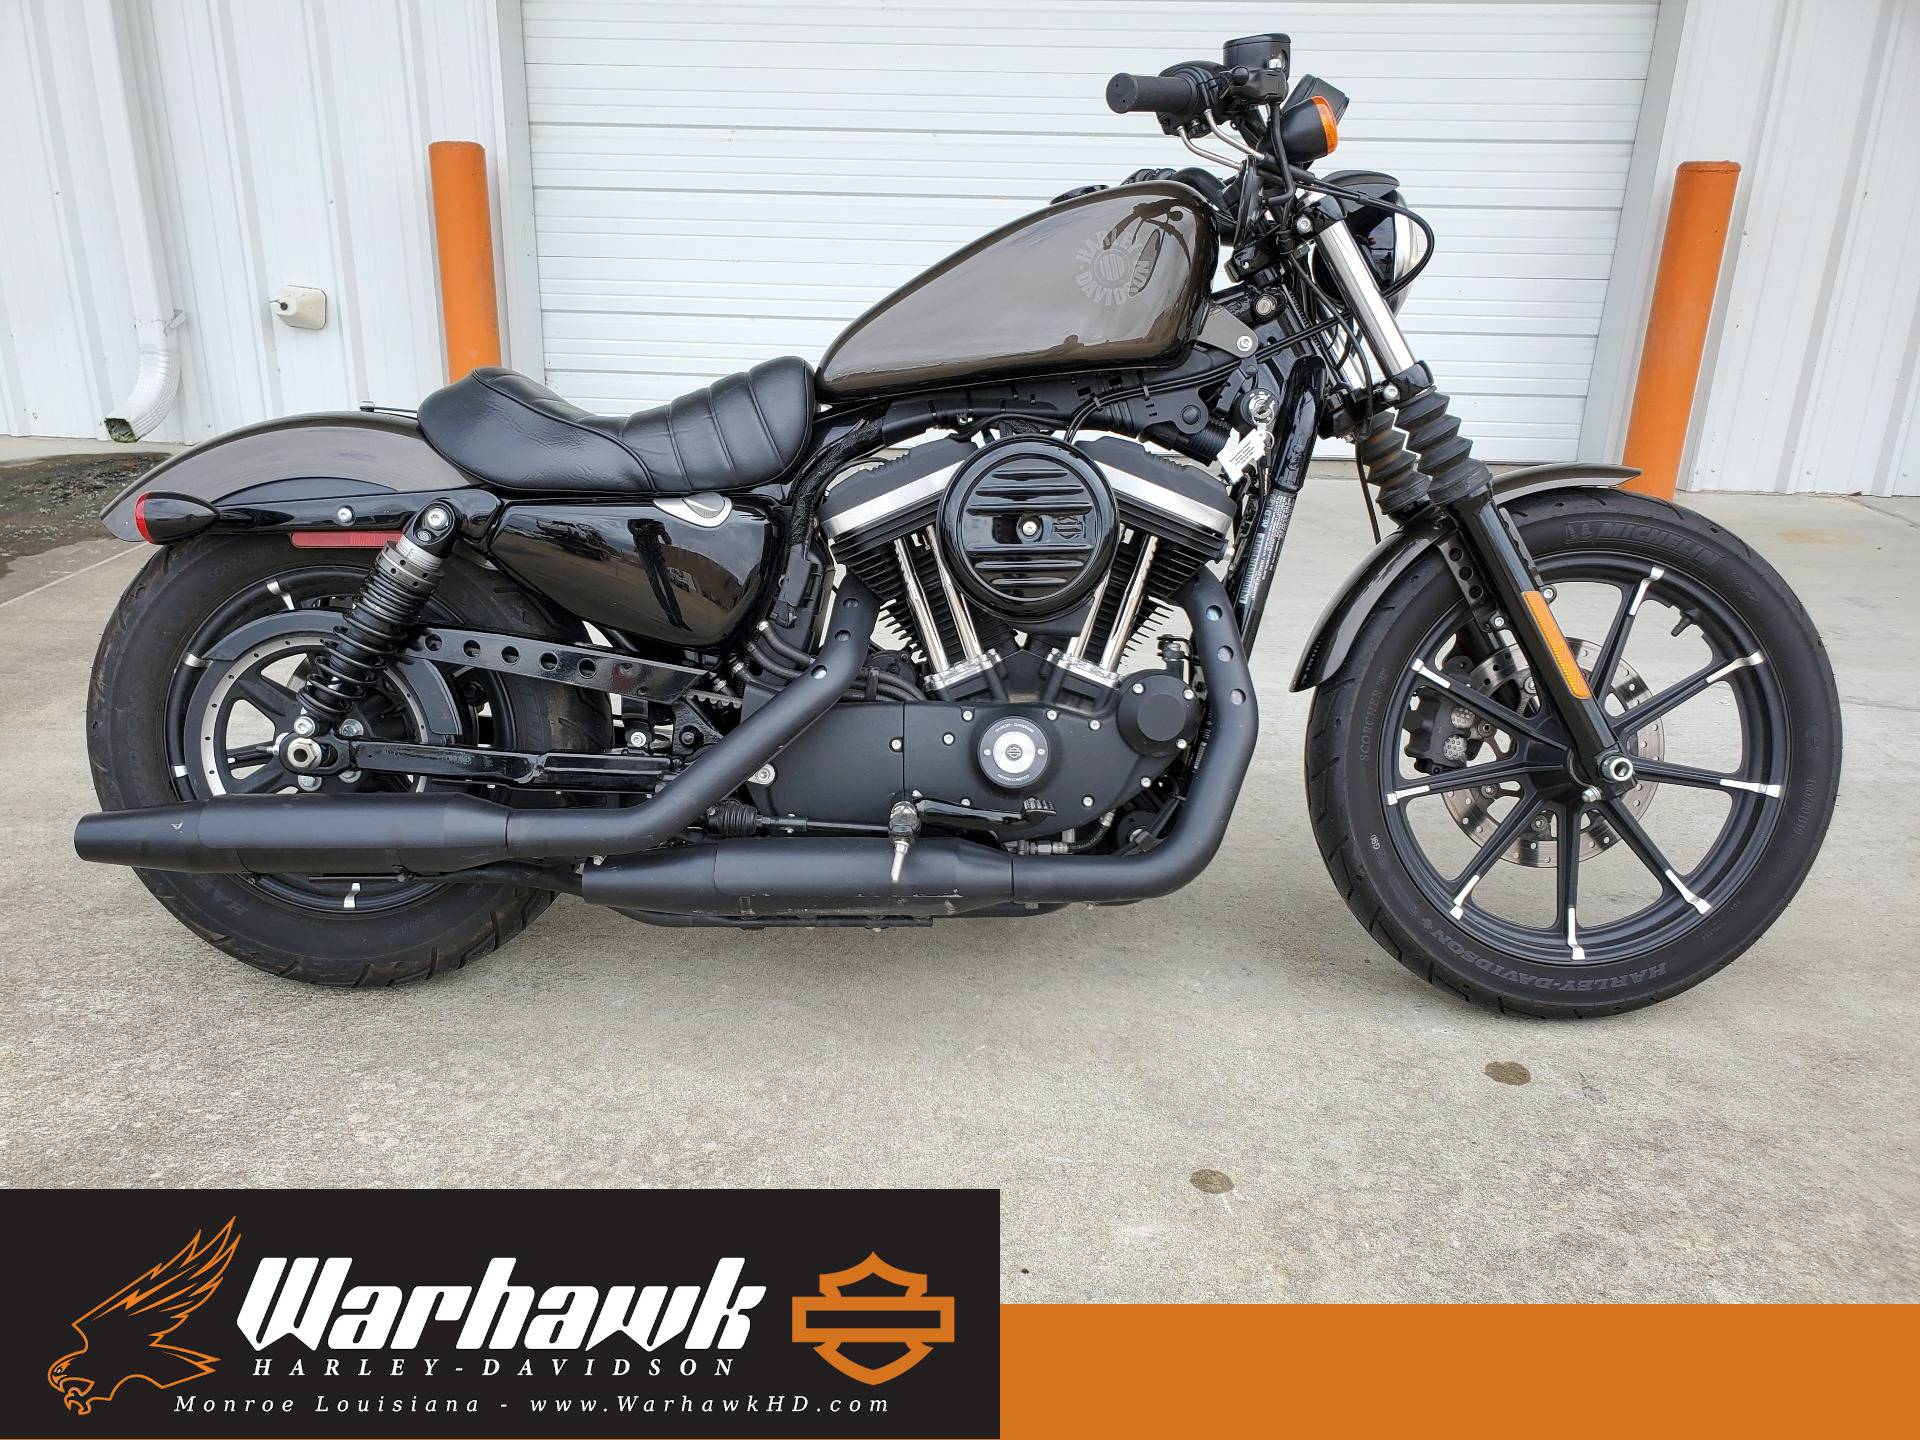 2020 Harley Sportster Iron 883 for sale - Photo 1